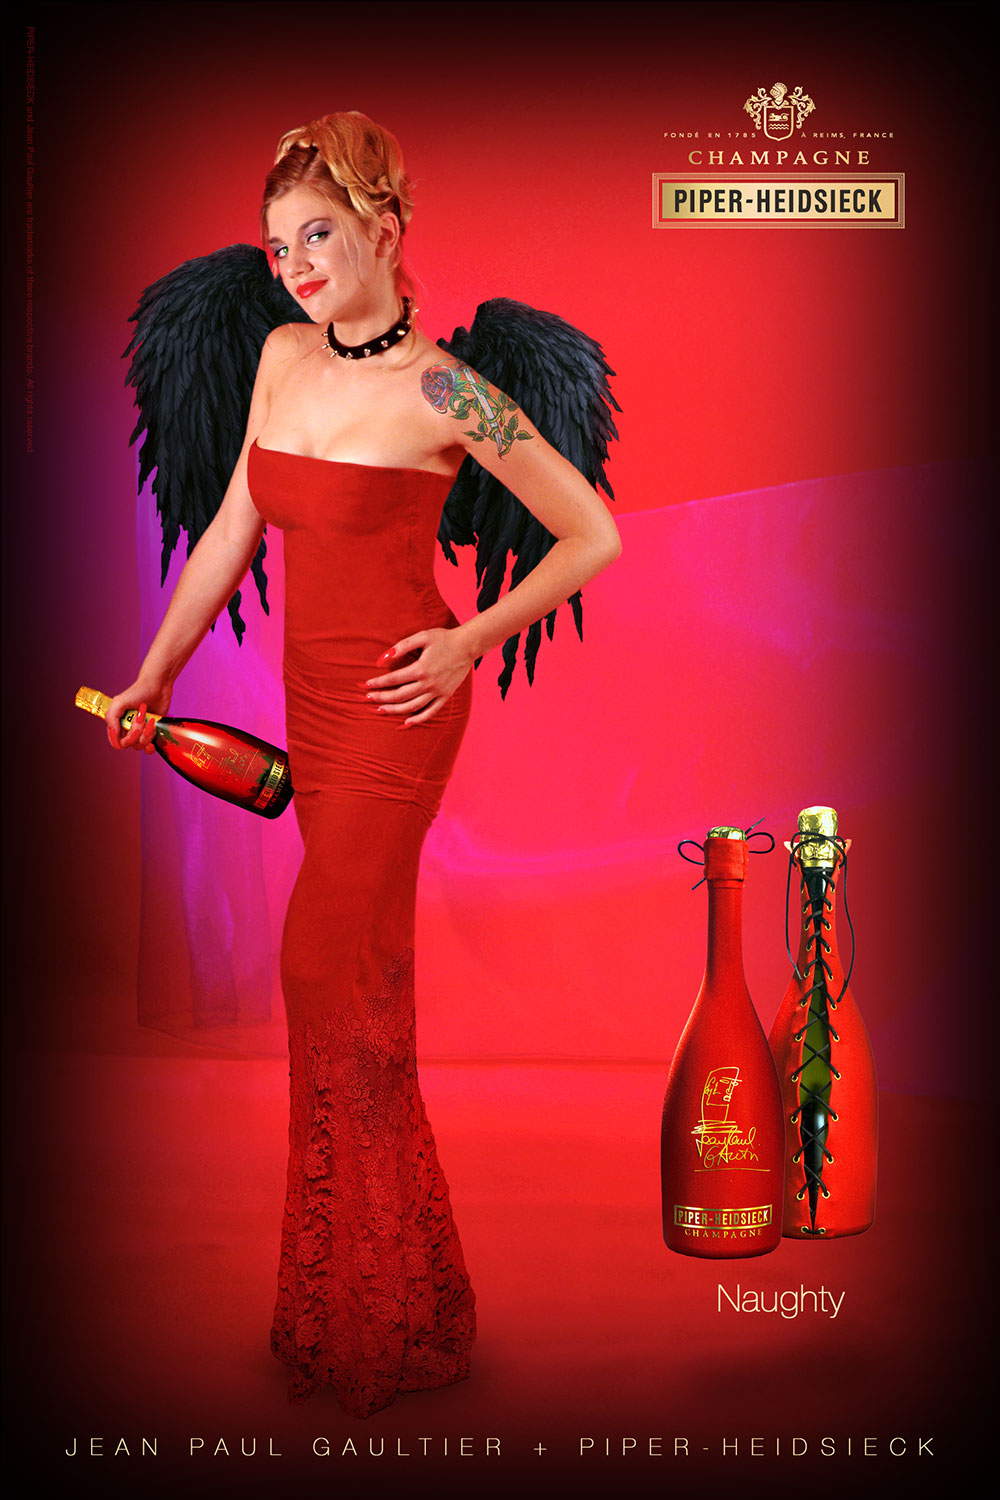 Jean Paul Gaultier Piper Heidsieck Full Page Ad